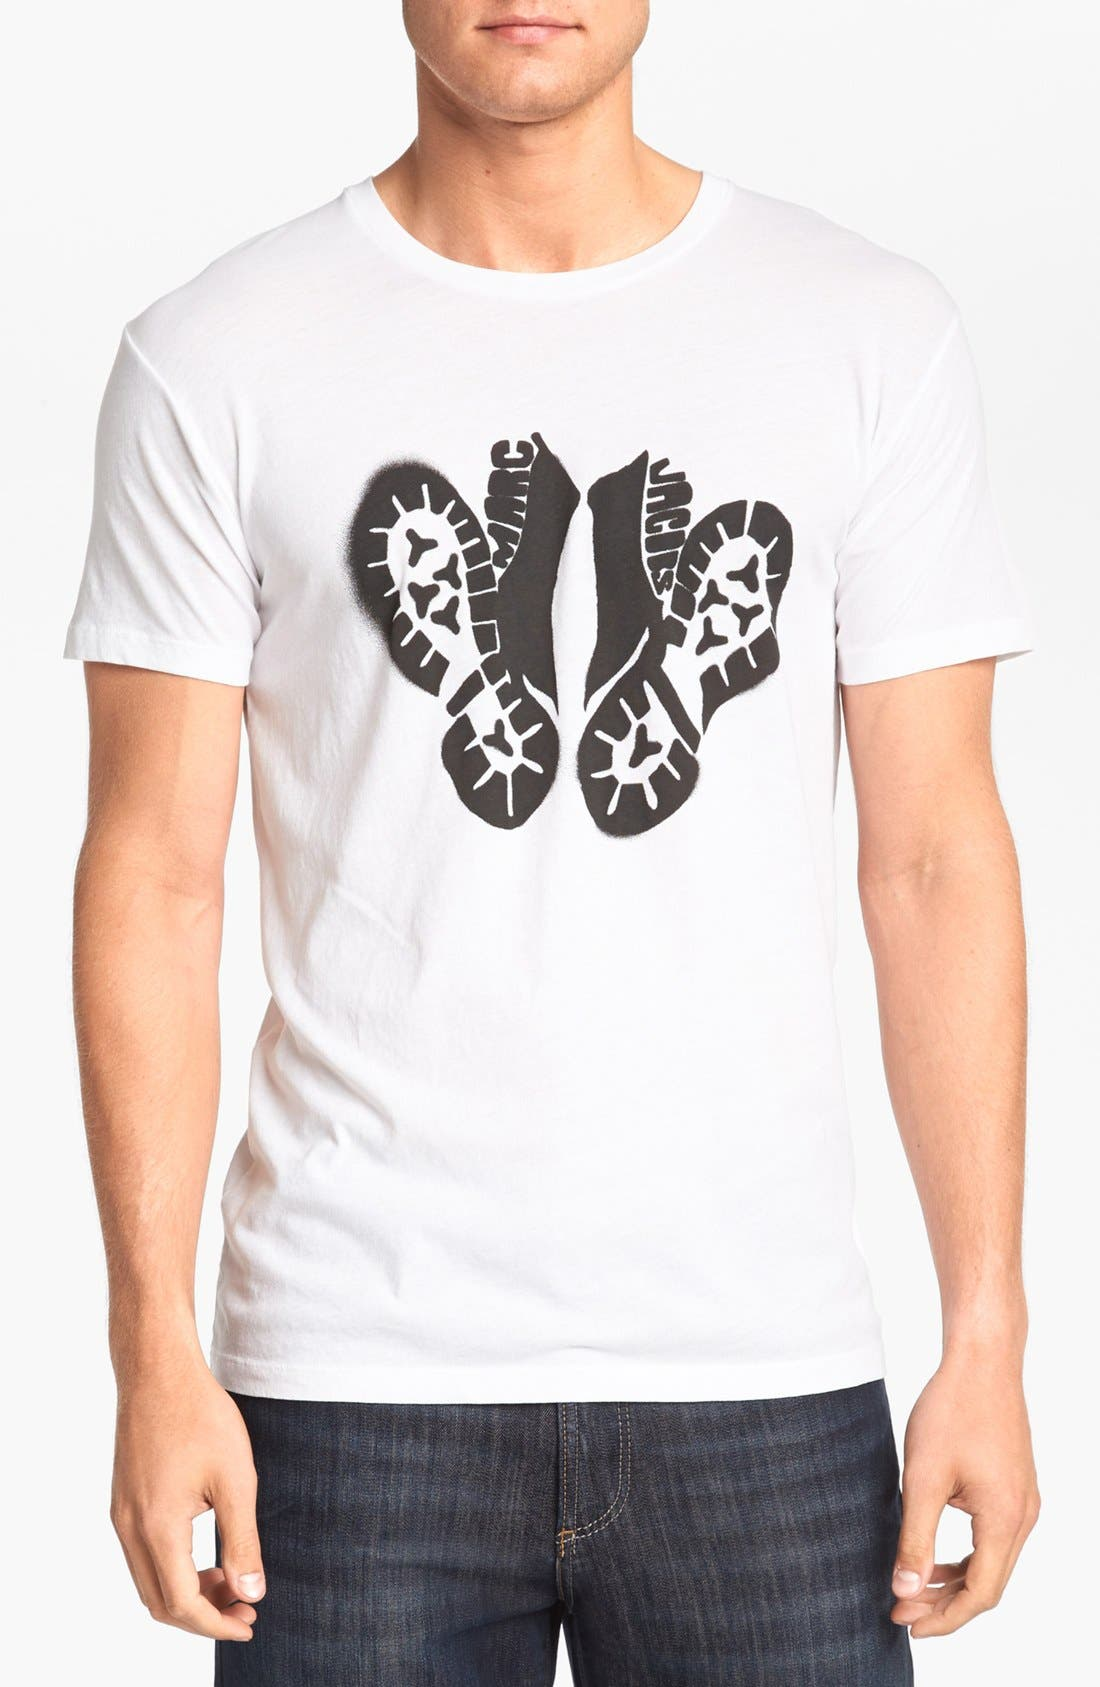 Main Image - MARC BY MARC JACOBS Stencil Boots Cotton T-Shirt